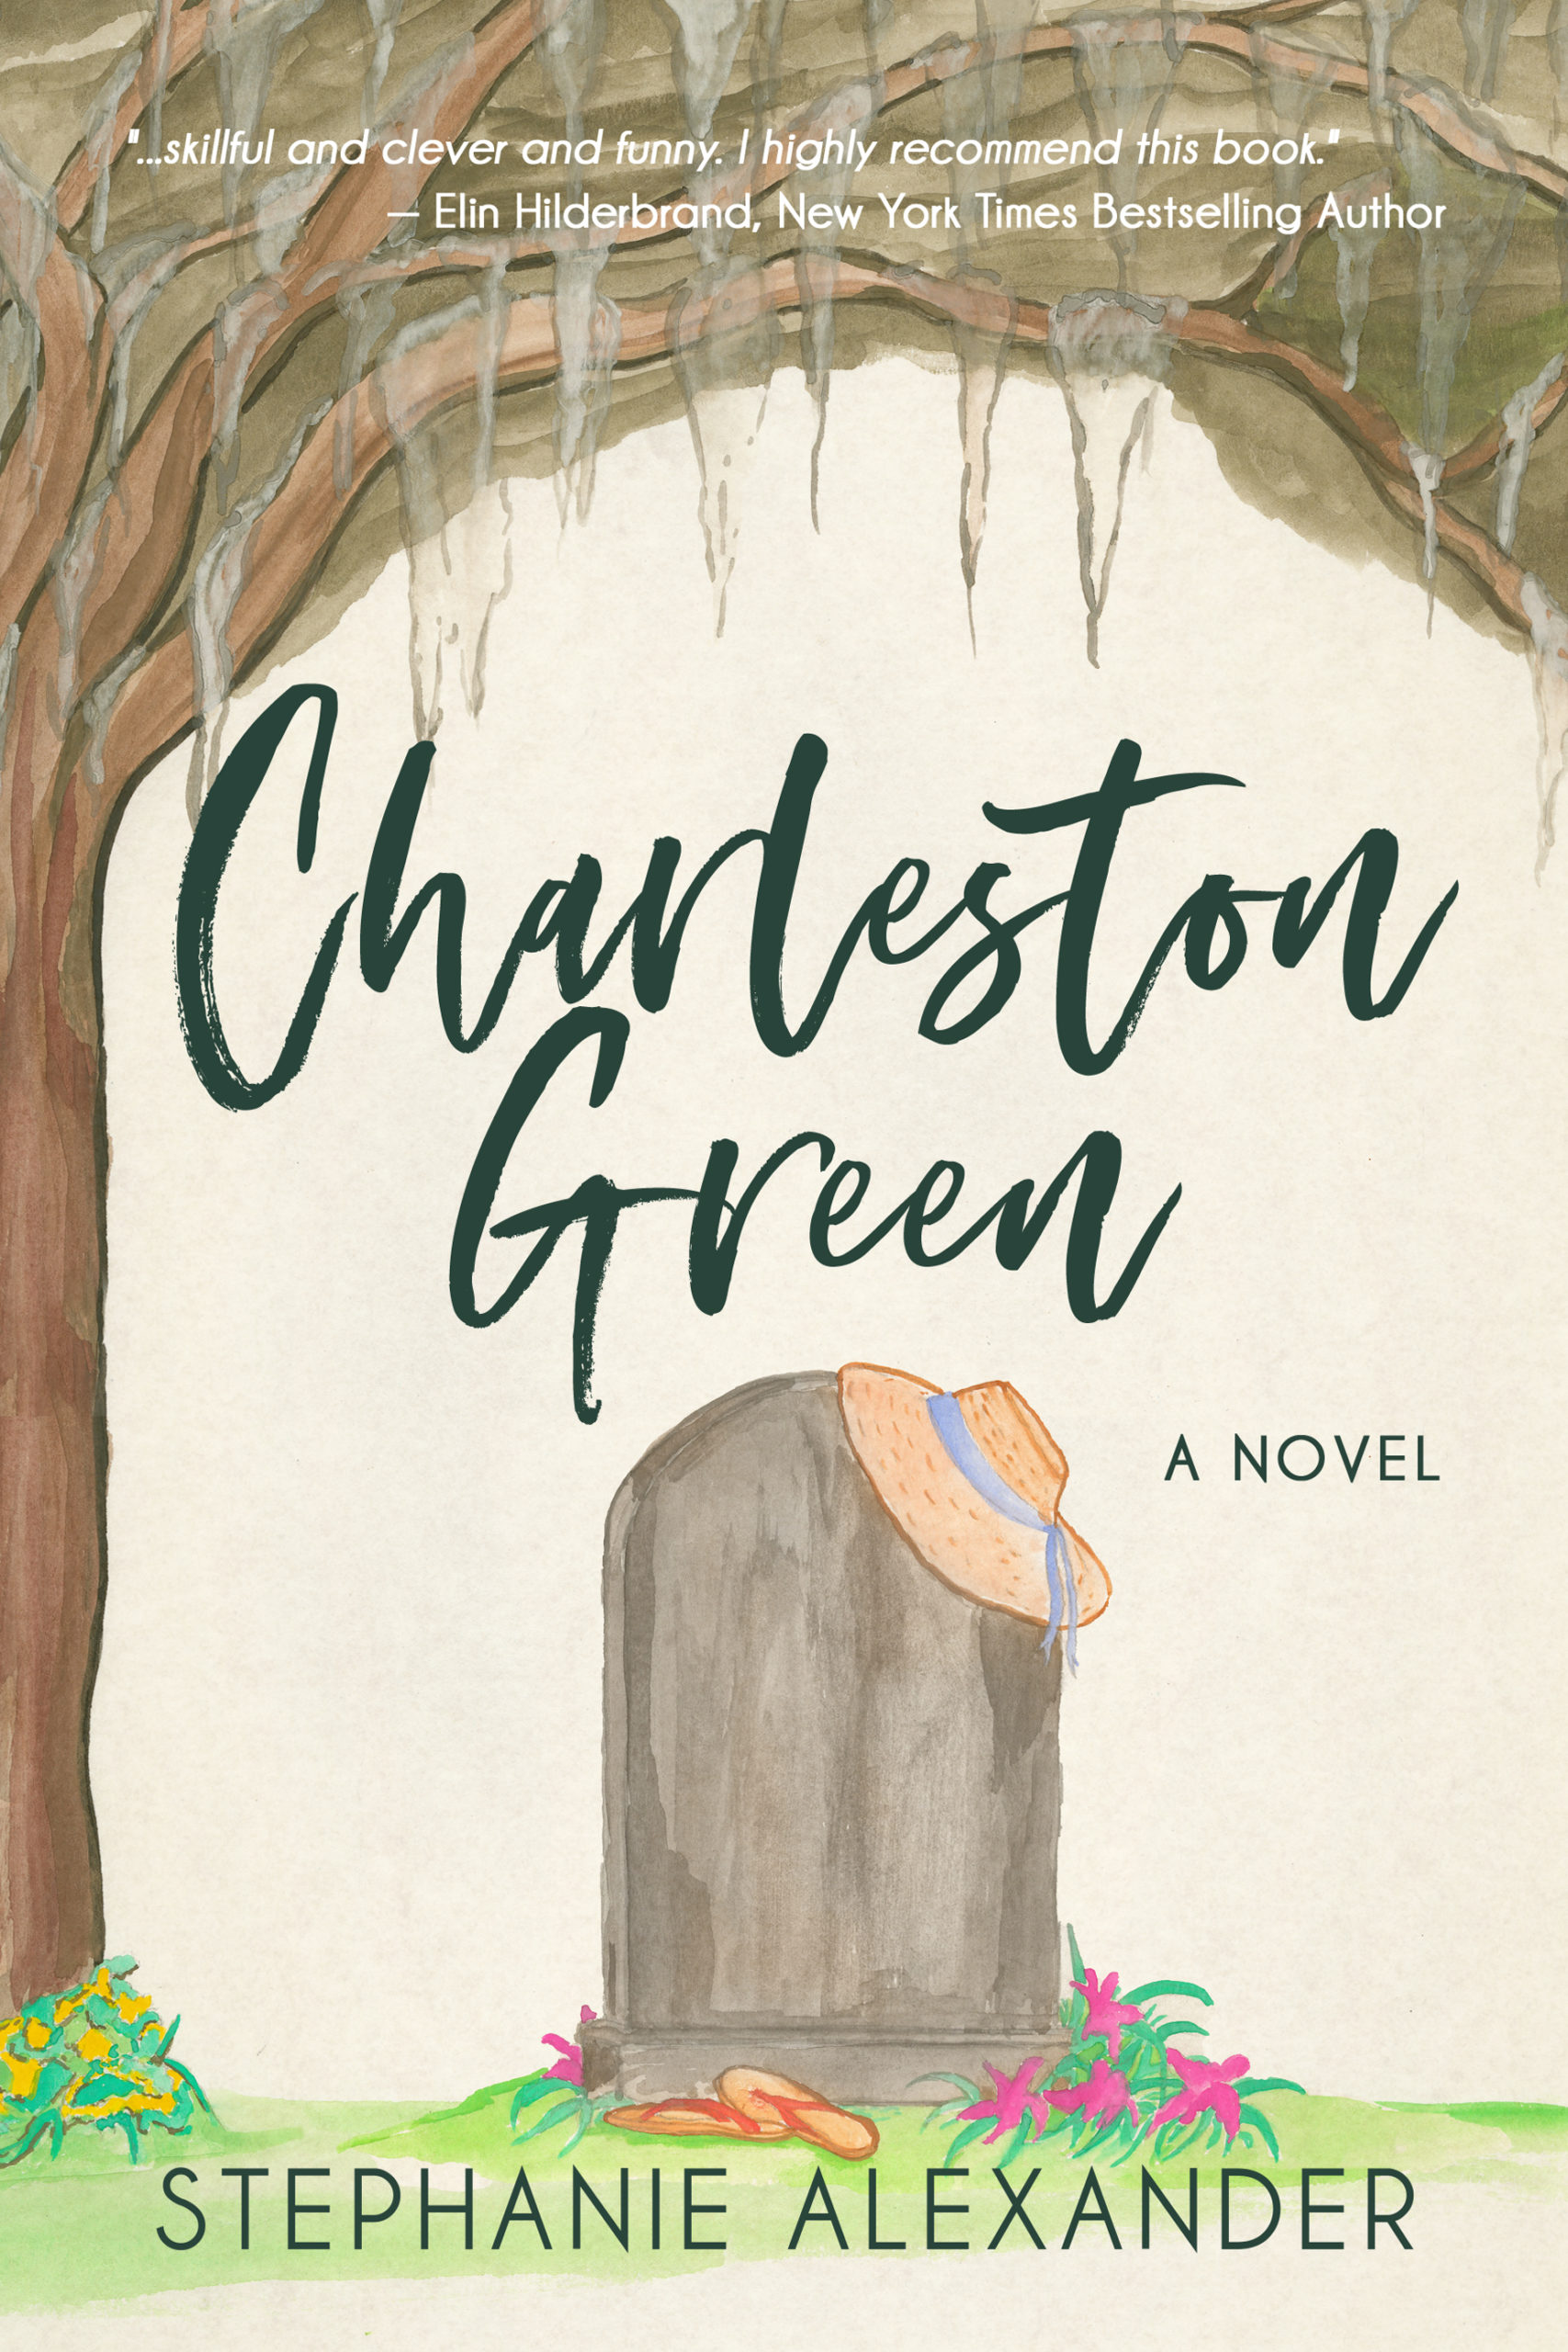 Charleston Green: A Novel